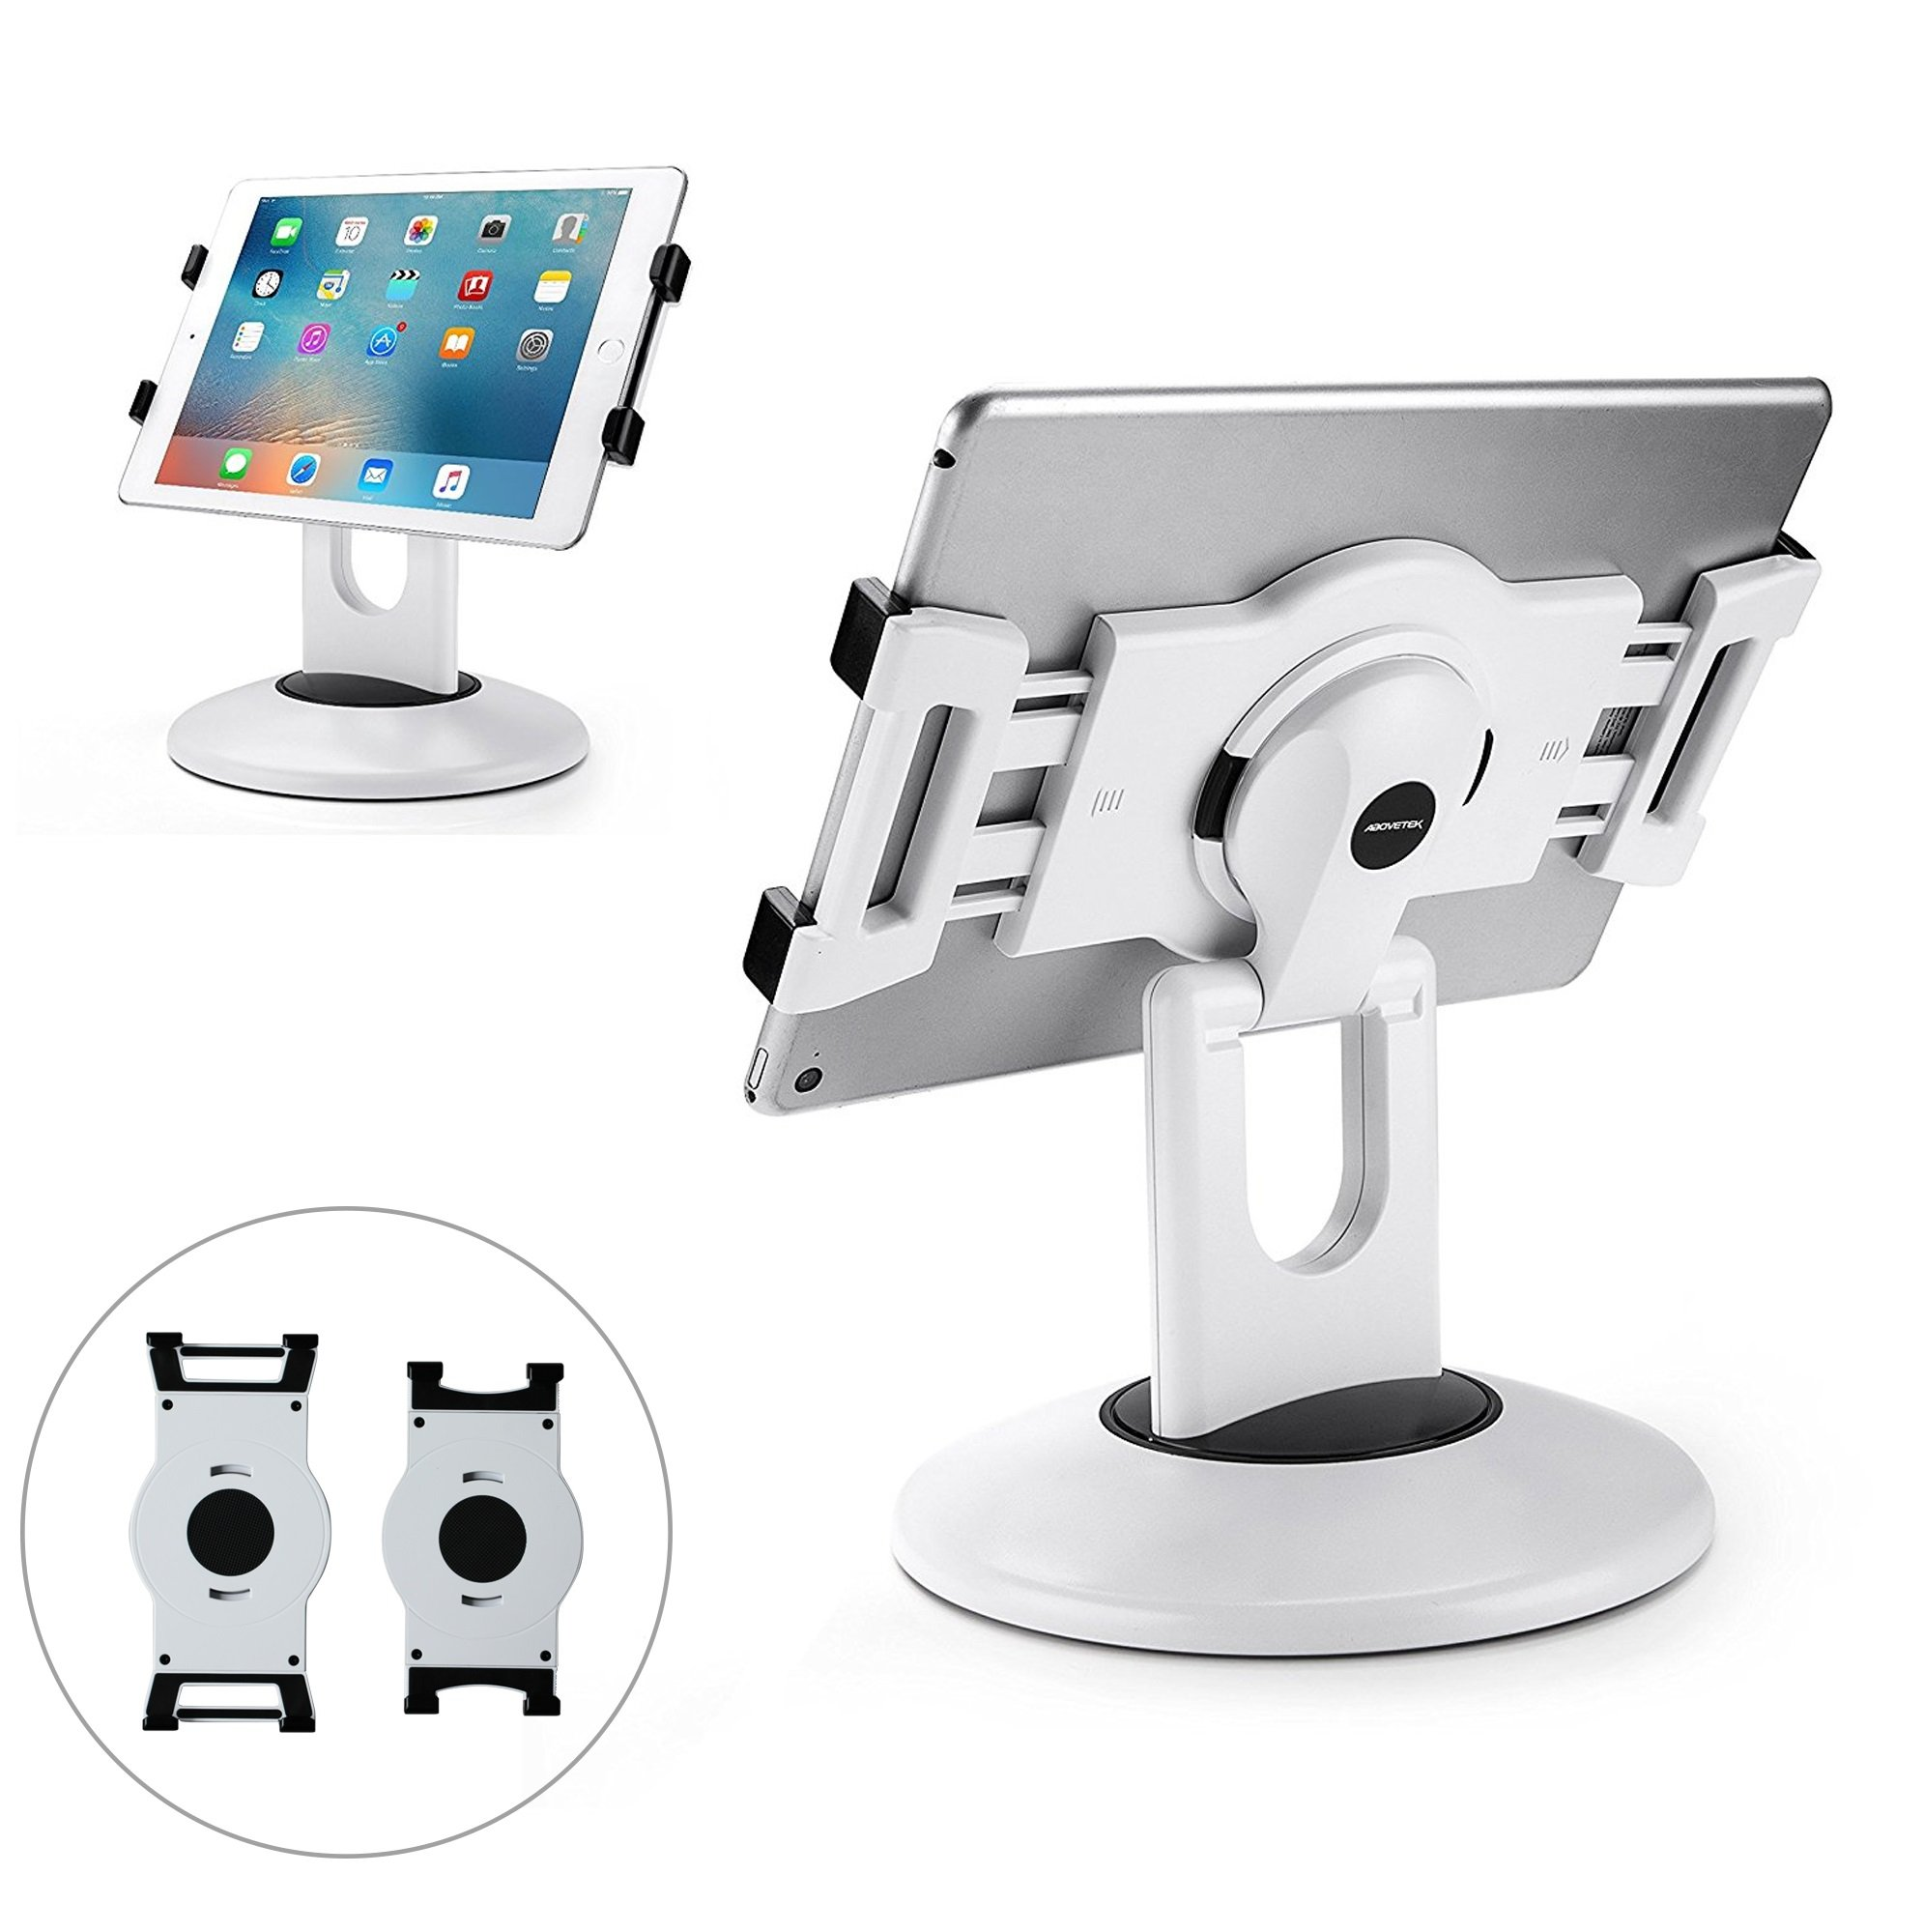 AboveTEK Retail Kiosk iPad Stand, 360° Rotating Commercial Tablet Stand, 6-13.5'' iPad Mini Pro Business Tablet Holder, Swivel Design for Store POS Office Showcase Reception Kitchen Desktop (White)